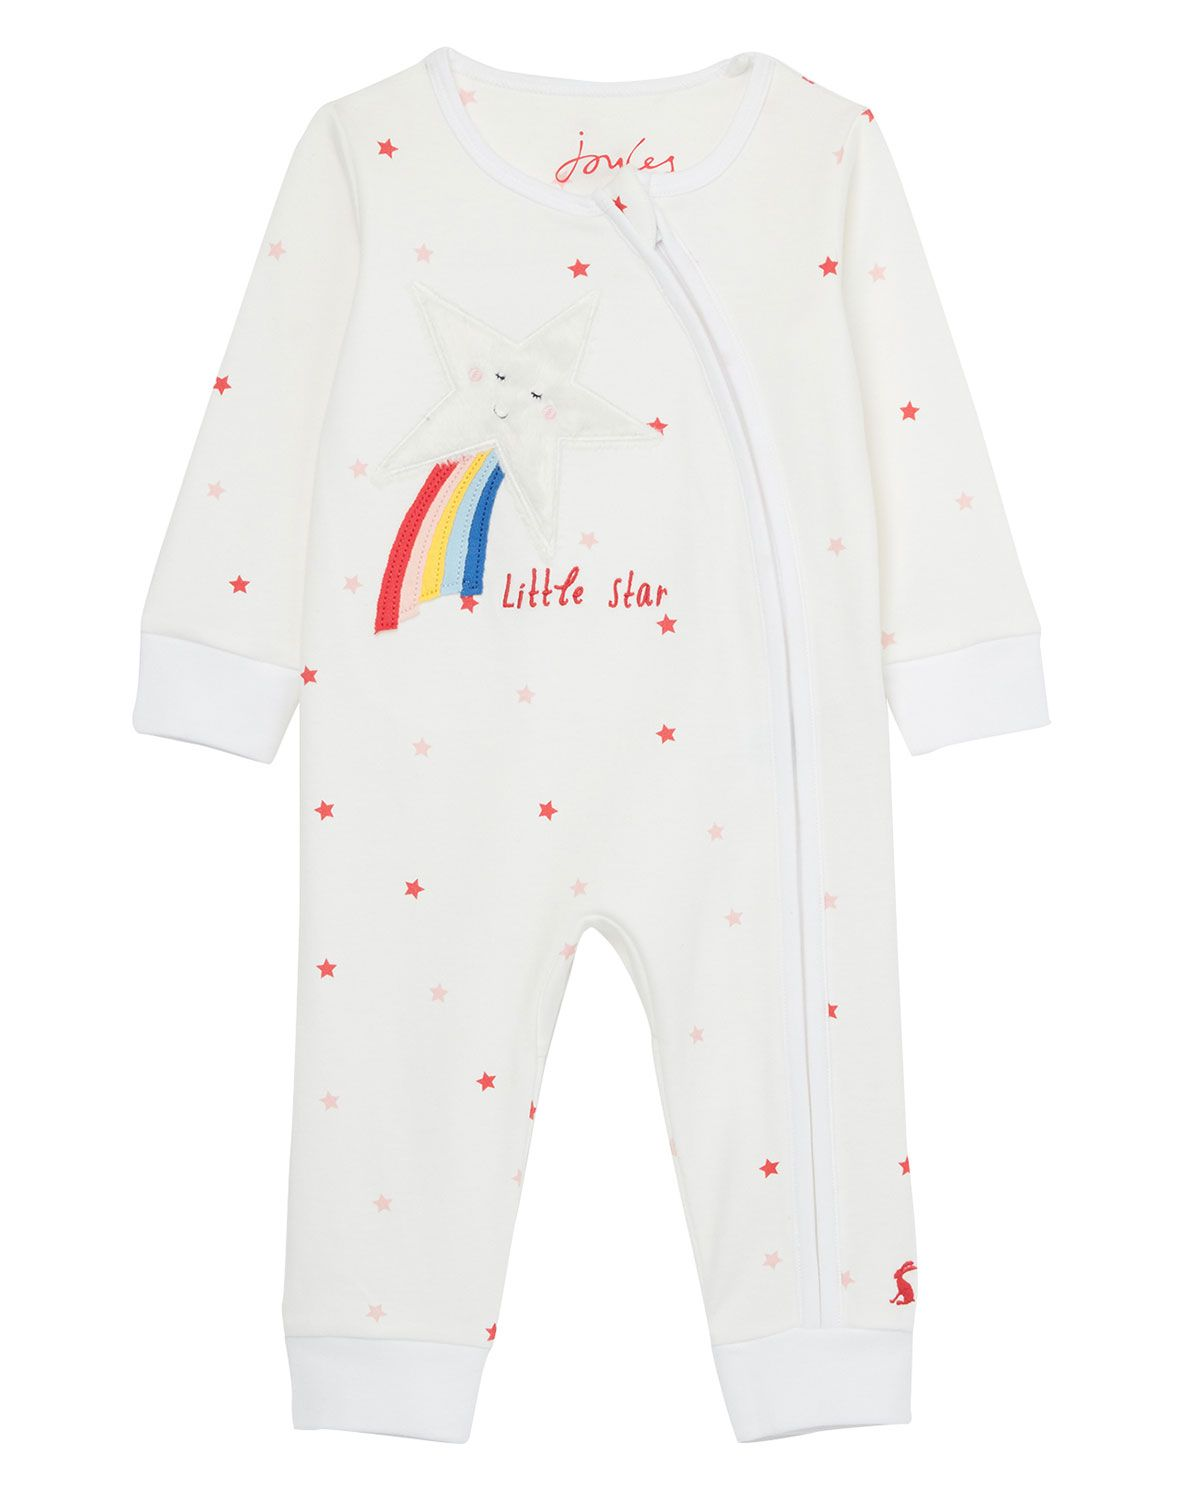 Joules Baby Cosette Reversible Jacket in WHITE STRIPE FLORAL